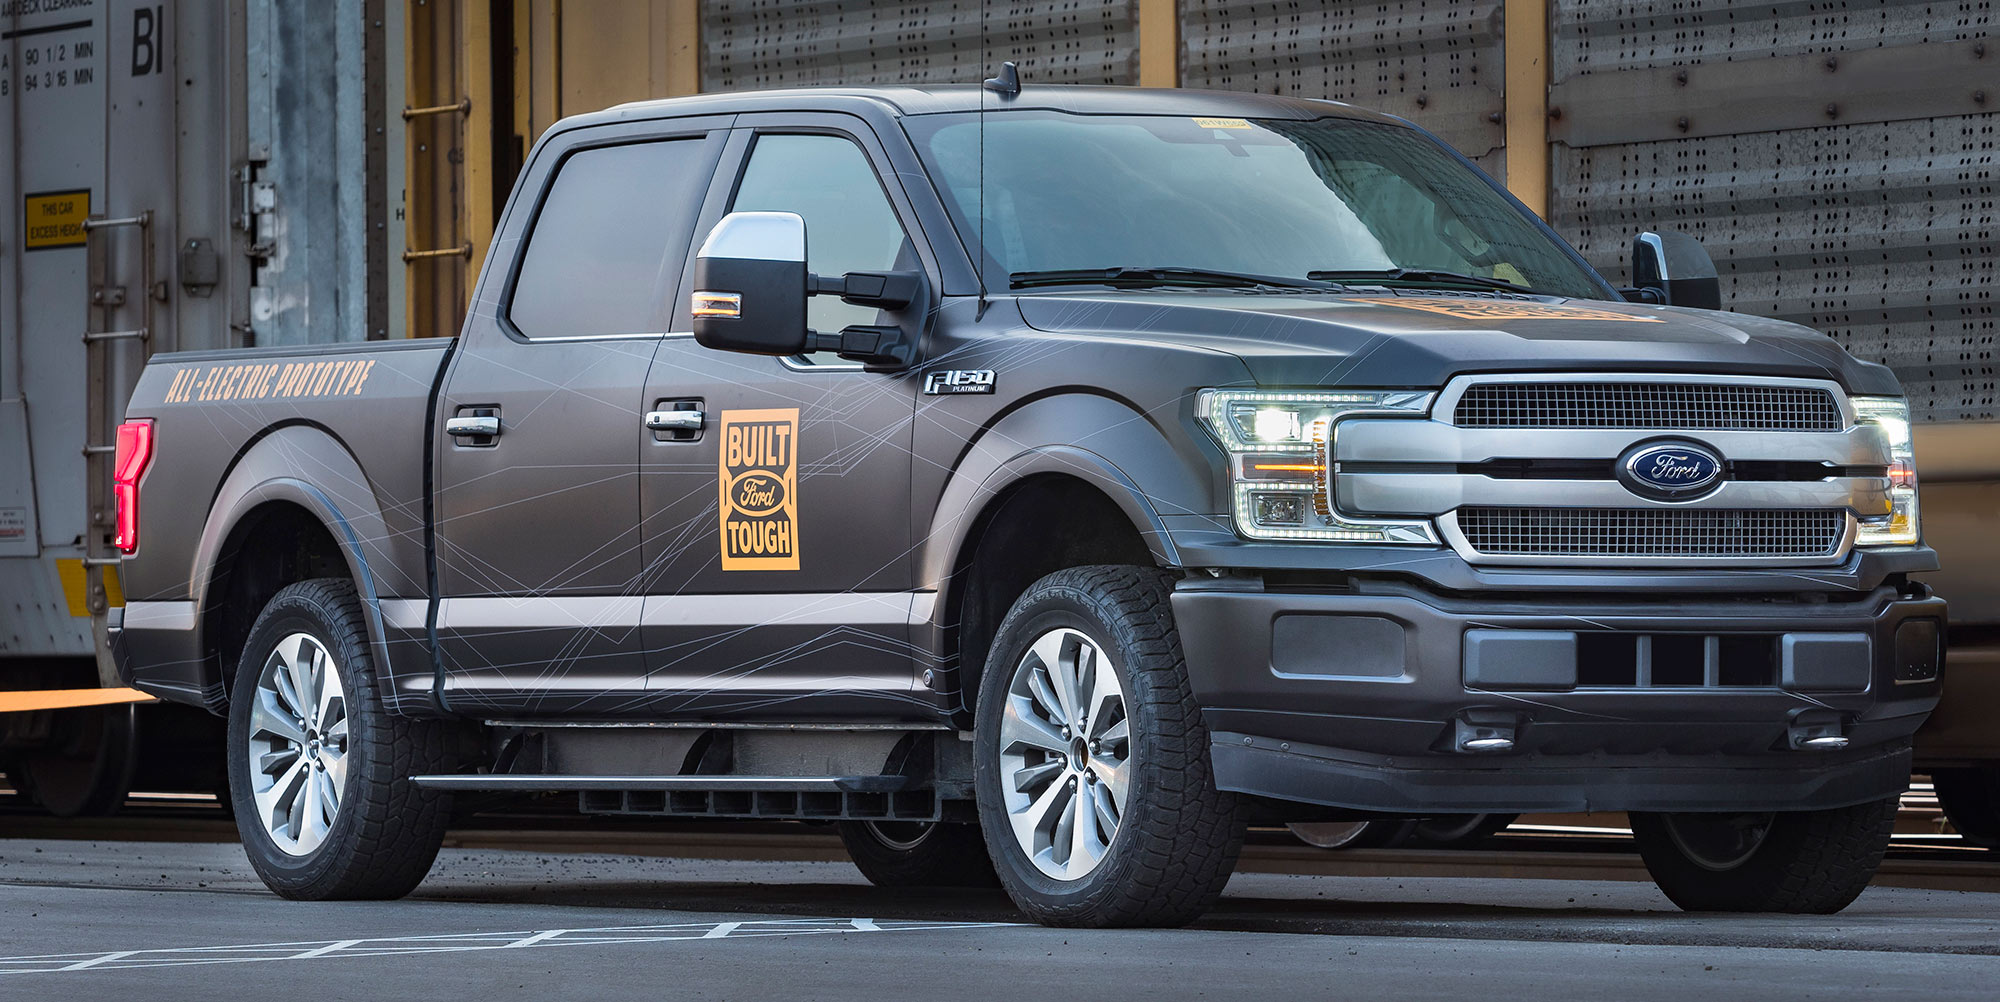 Electric F-150 prototype